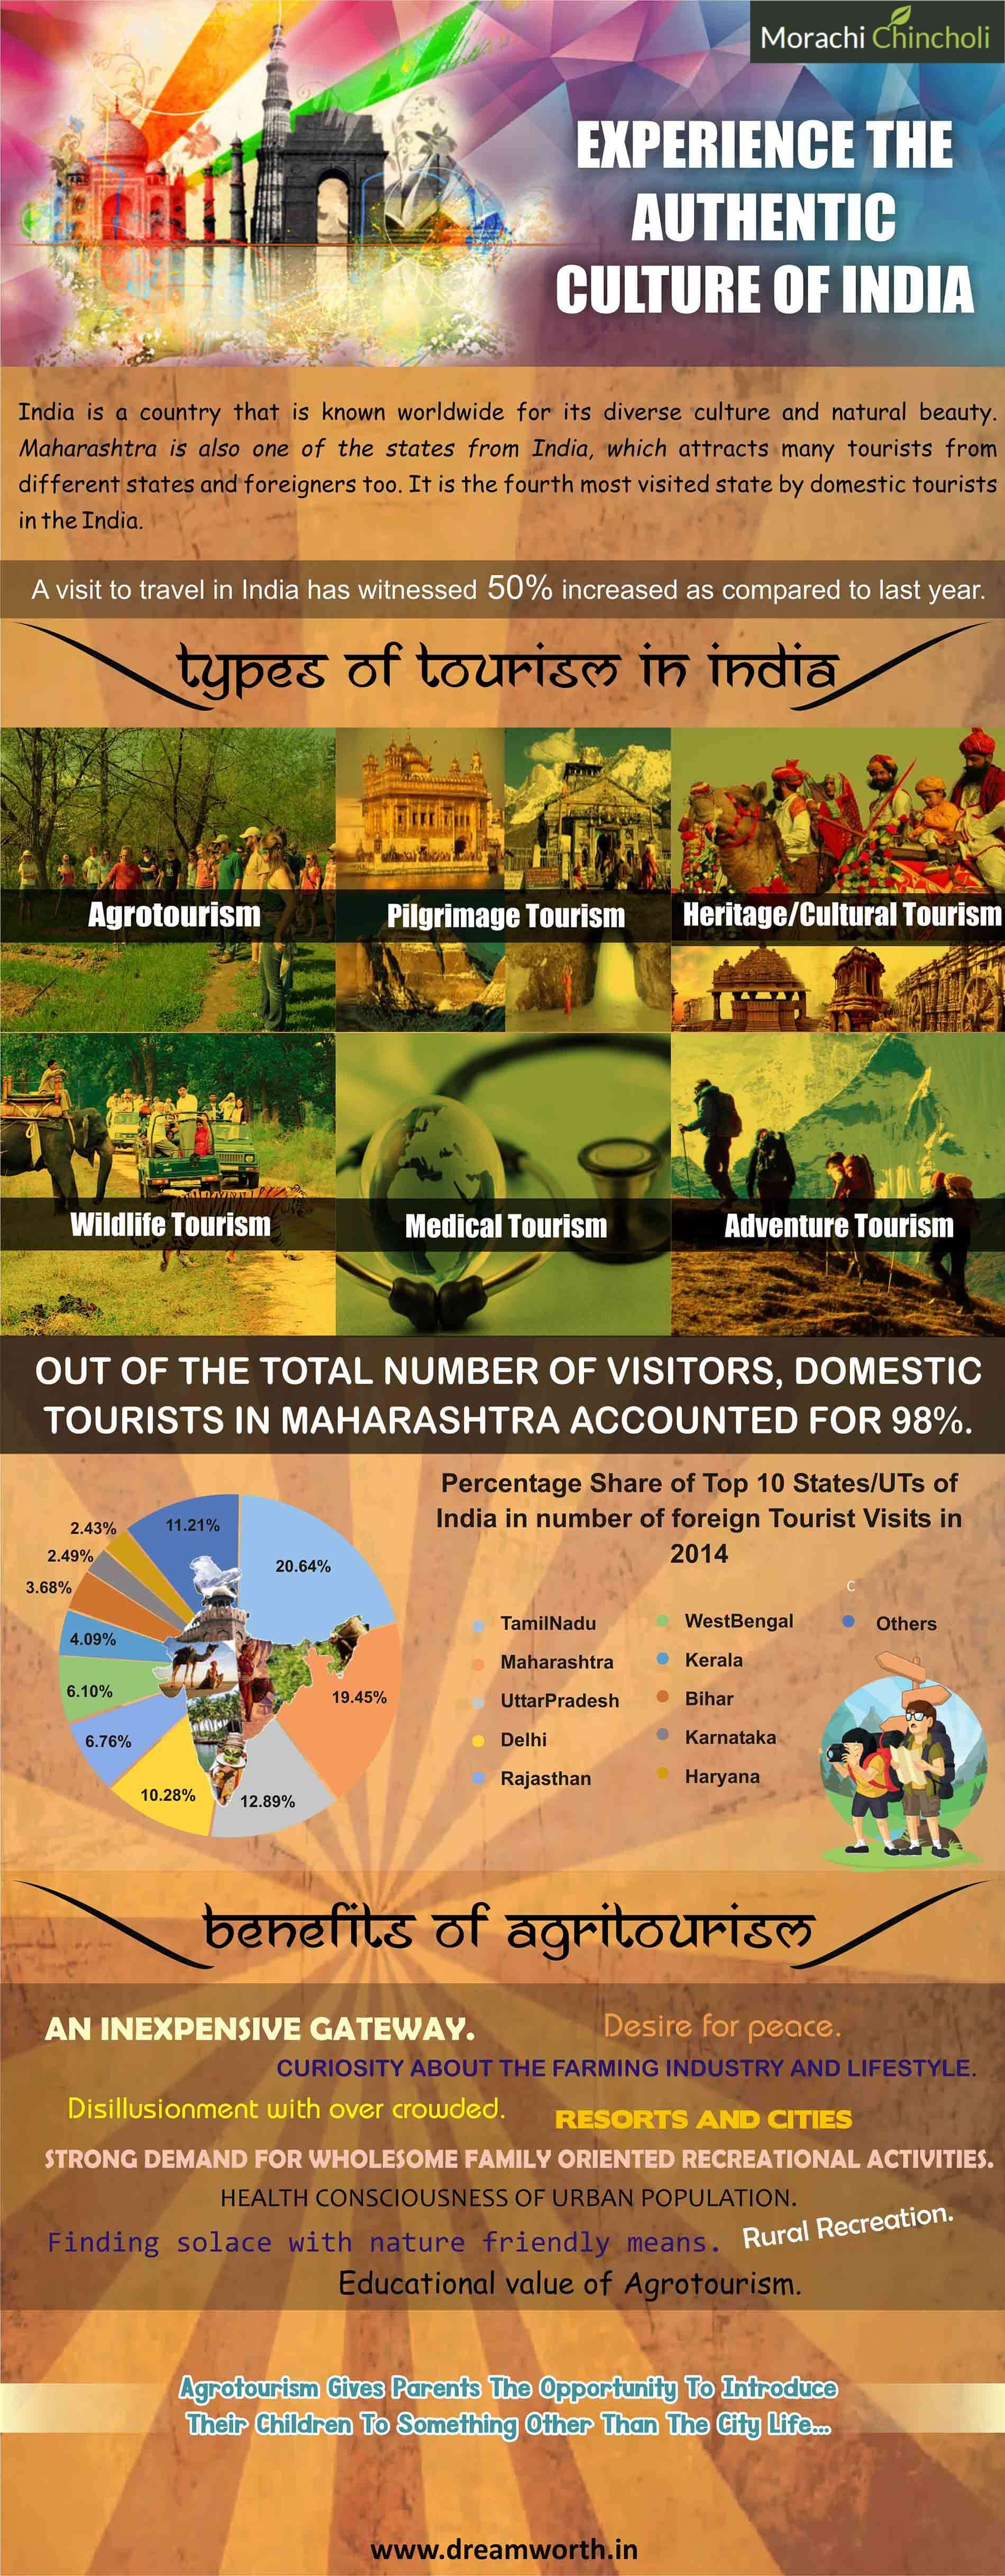 morachi chincholi infographics designed by the dreamworth